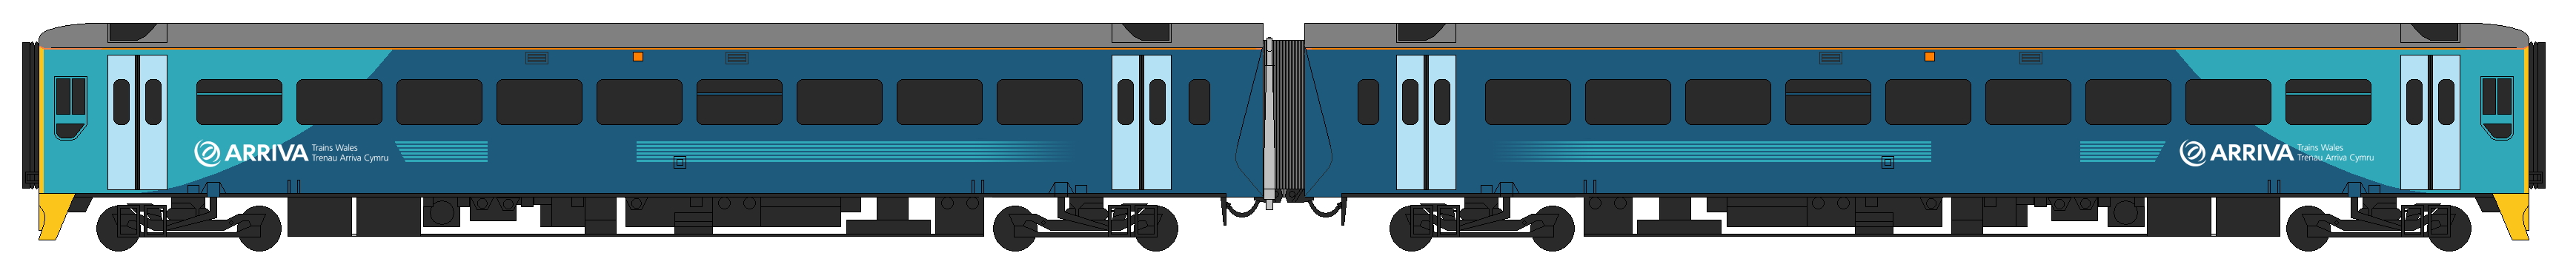 Datei Class 158 arriva    trains    wales    diagram   PNG     Wikipedia